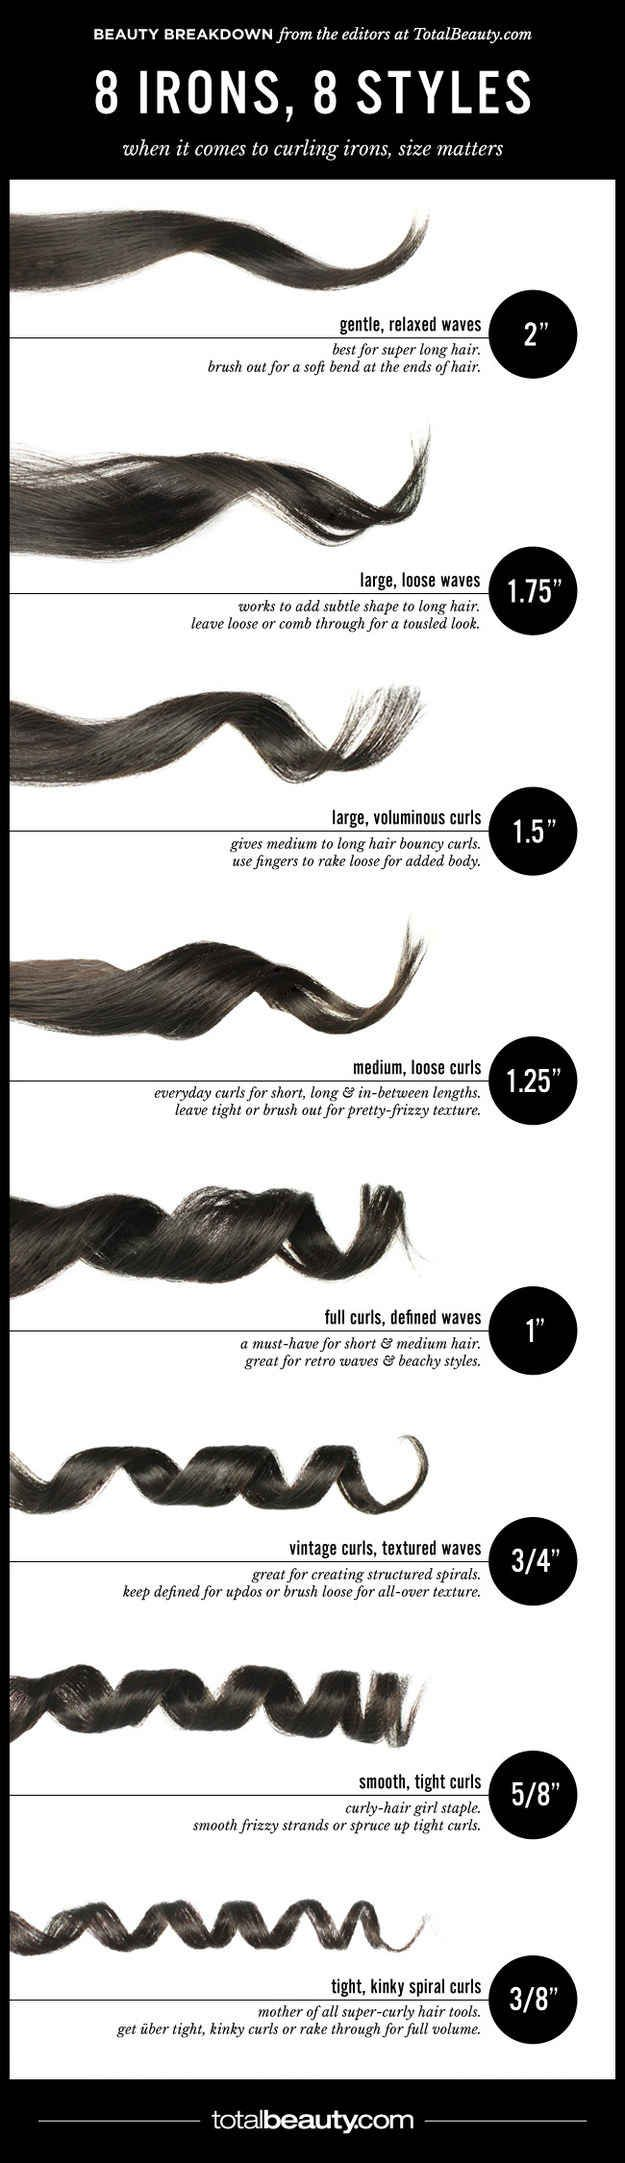 Stupendous 17 Best Ideas About Curling Iron Hairstyles On Pinterest Hair Hairstyles For Women Draintrainus